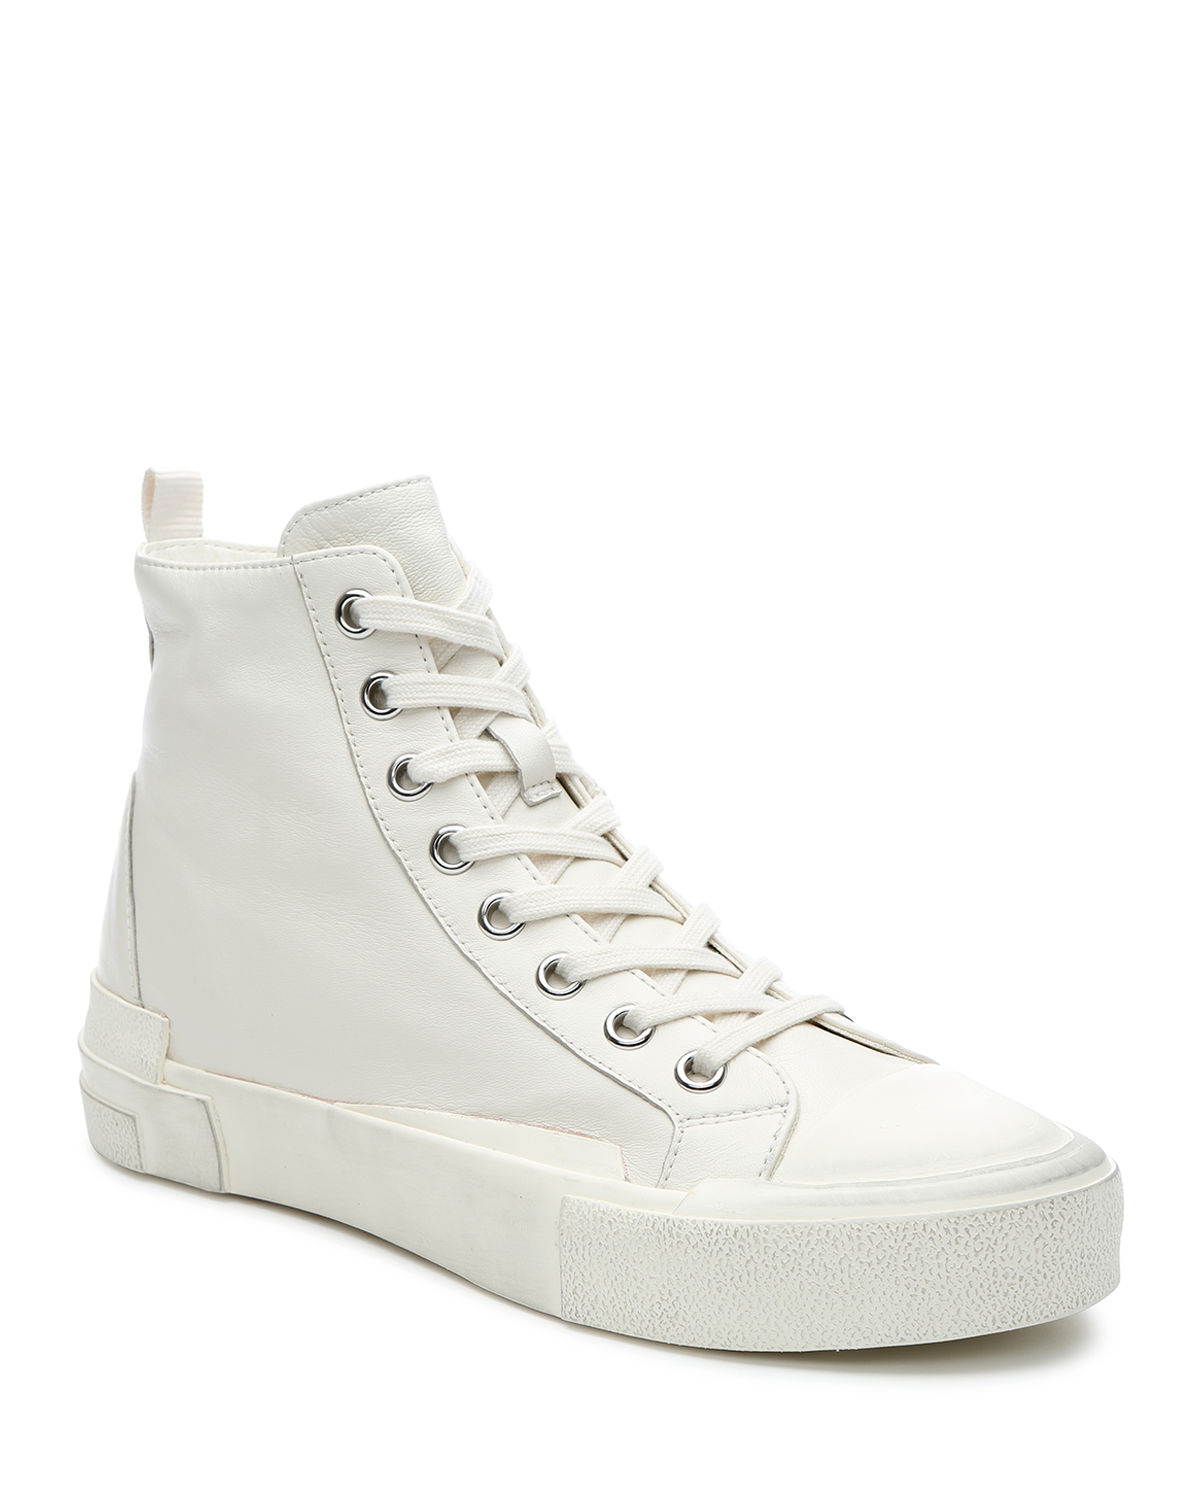 Ghibly Bis Leather High-Top Sneakers